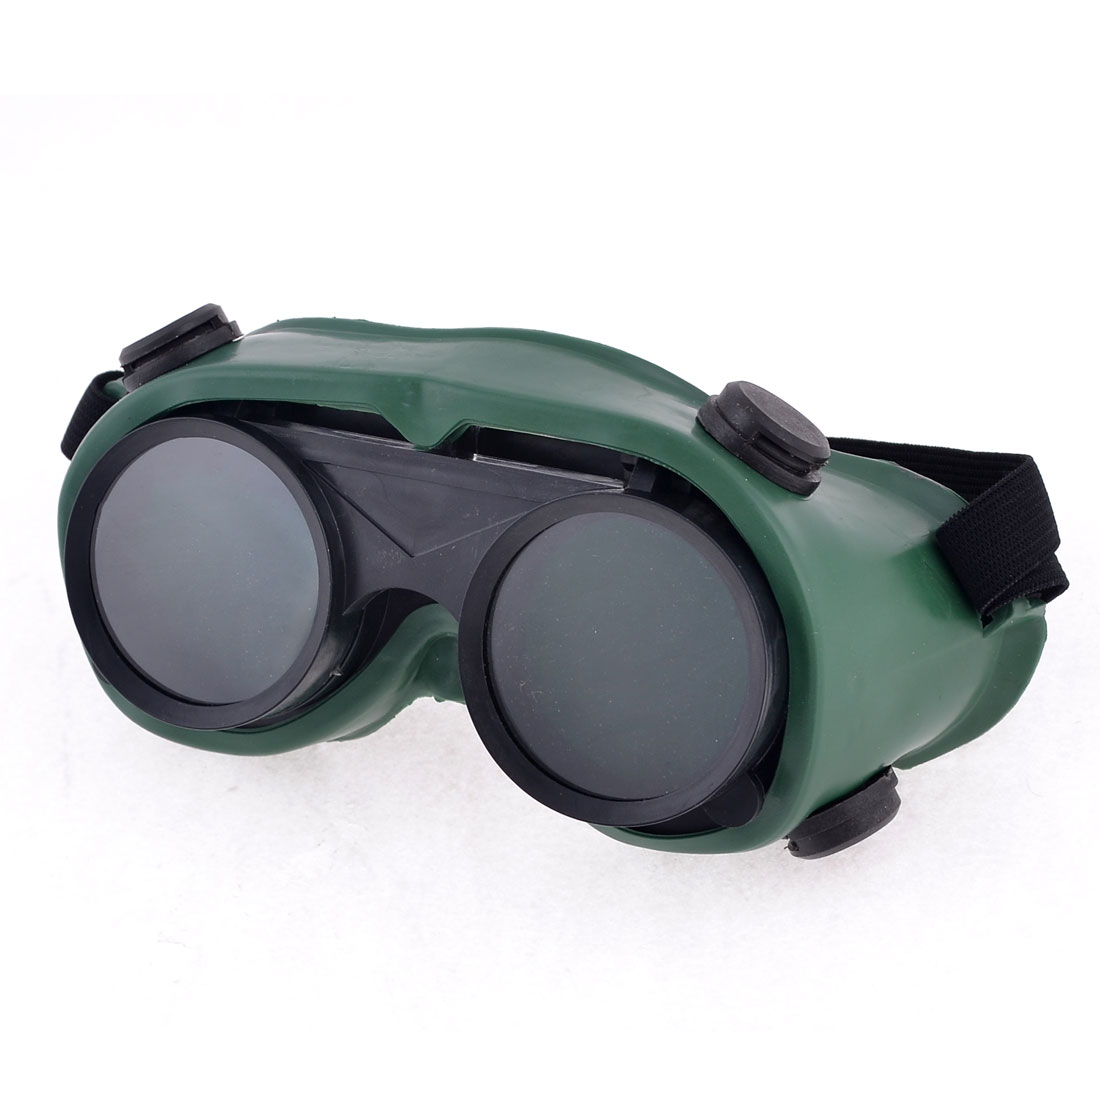 Stretchy Strap Double Layer Lens Grinding Cutting Welding Goggles Glasses